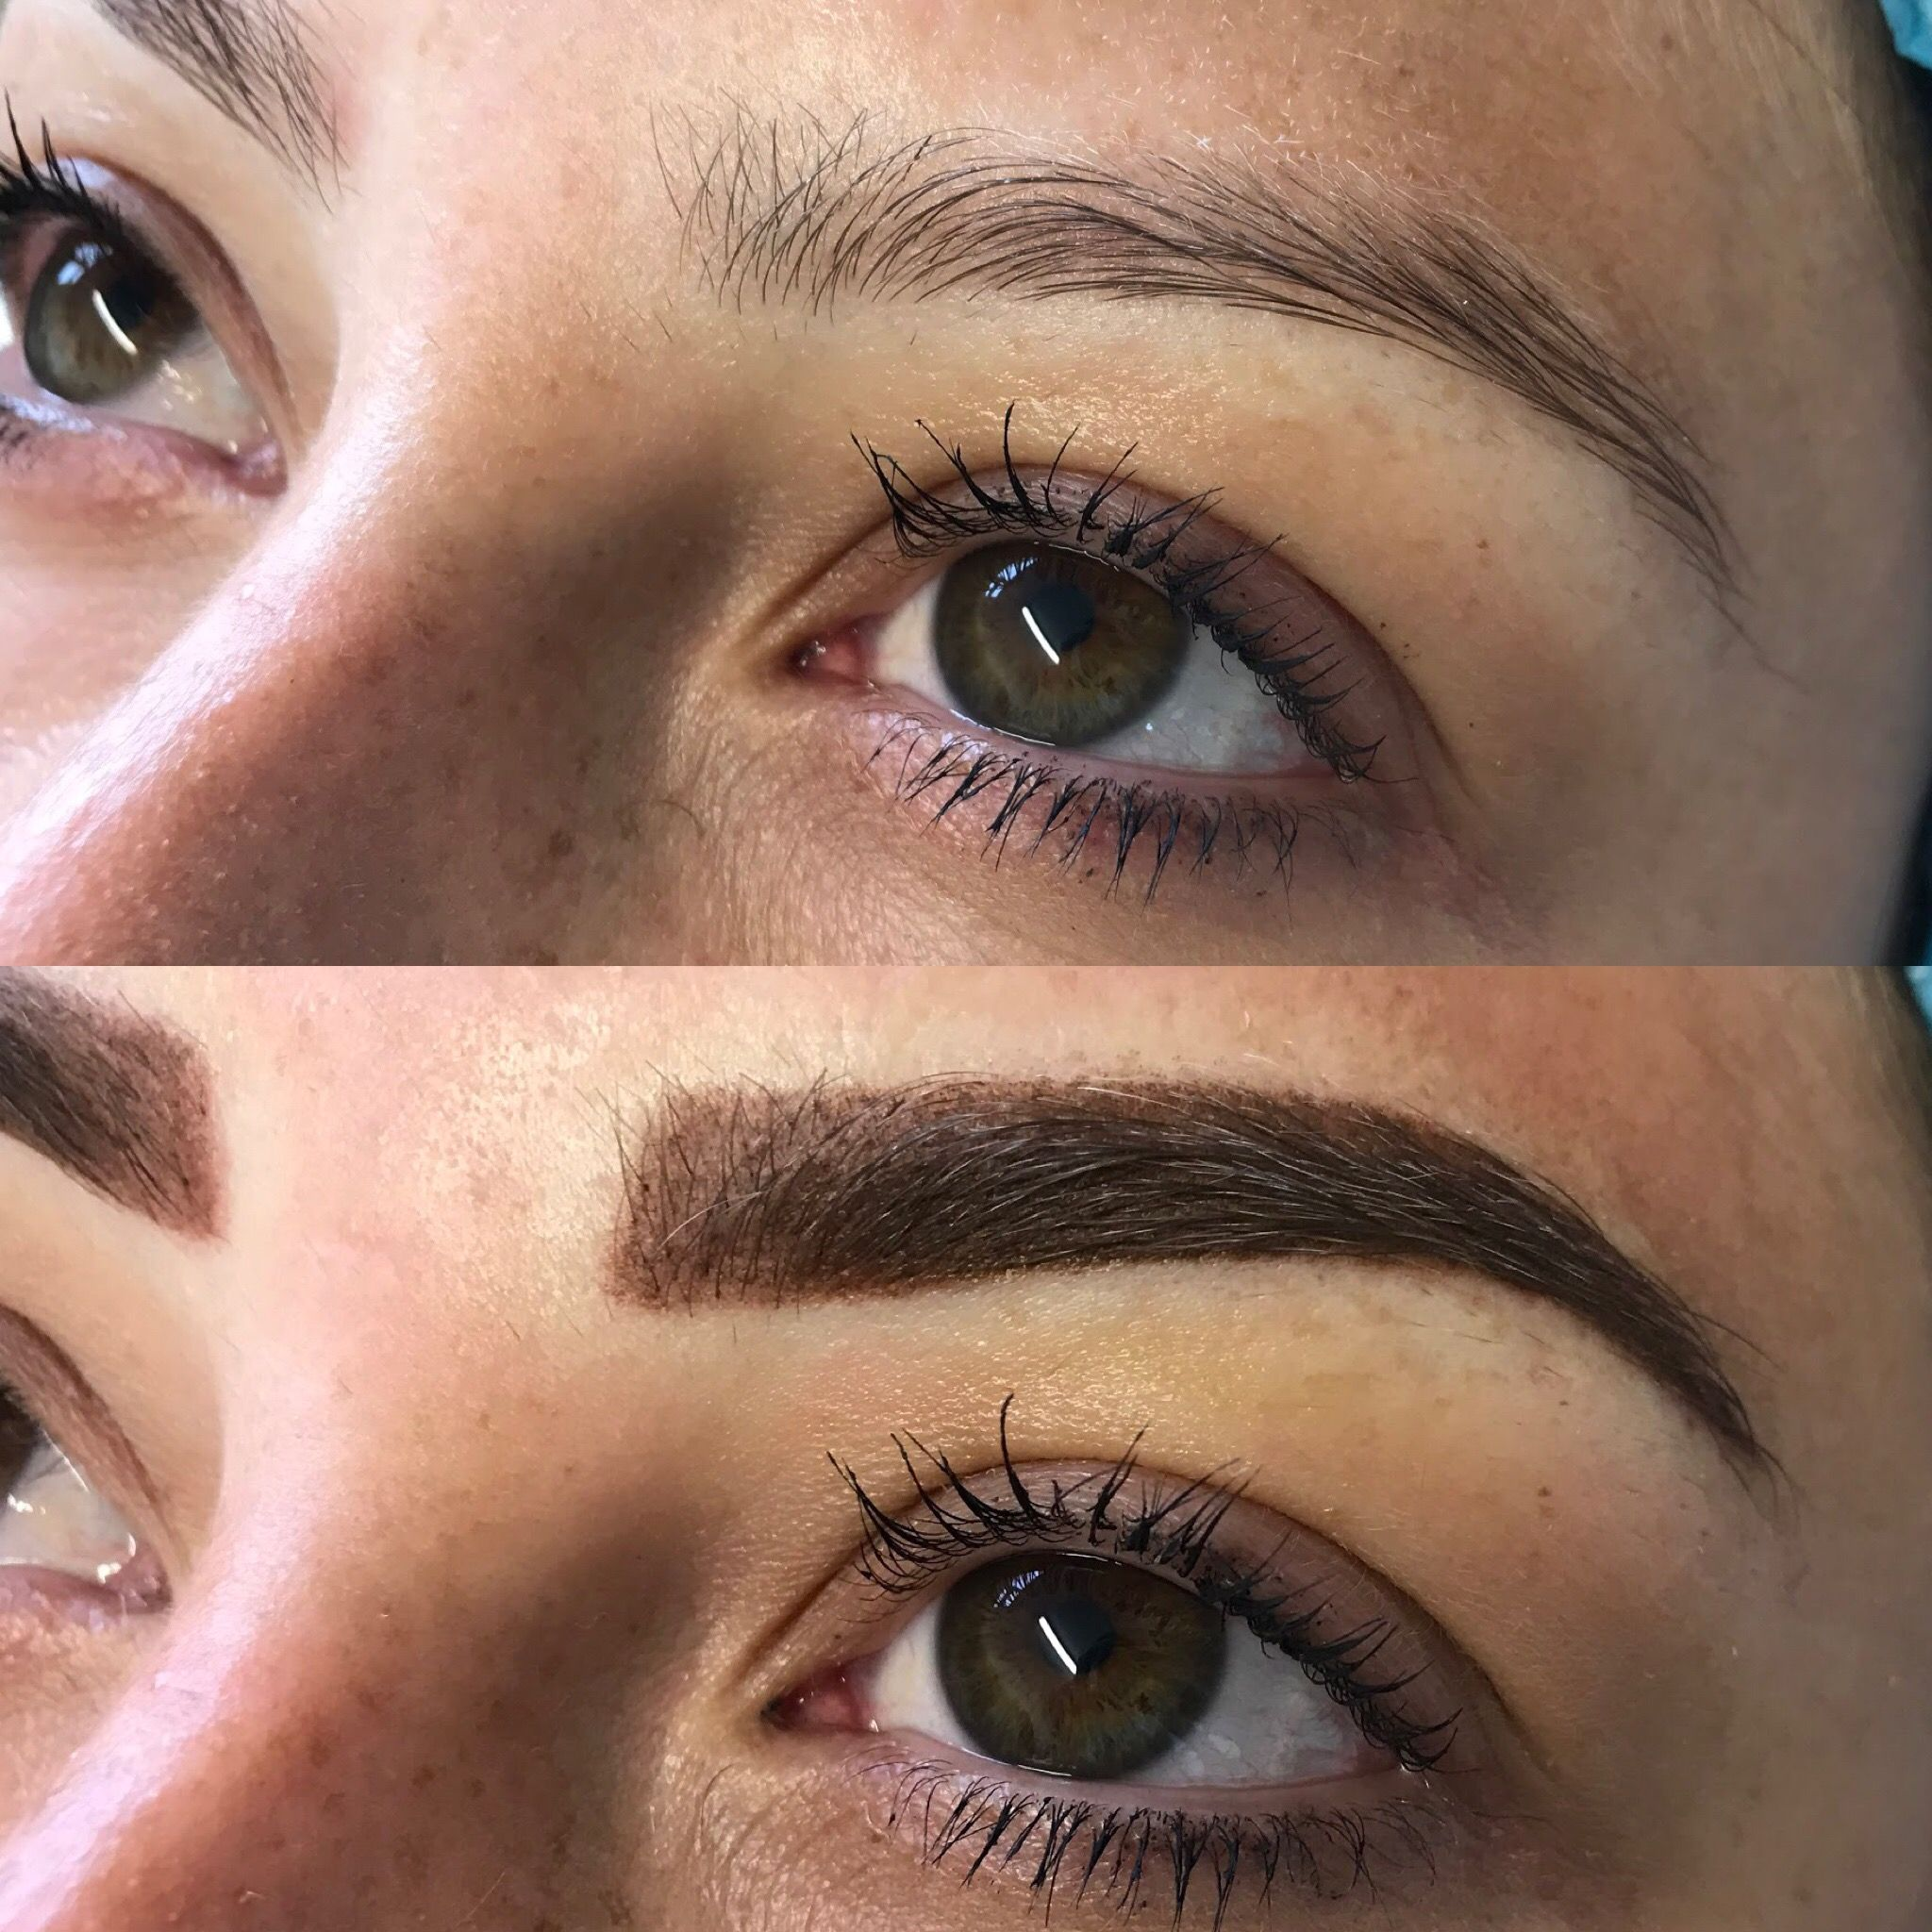 Ombré Brows created with Machine by Hollie Houston. Will